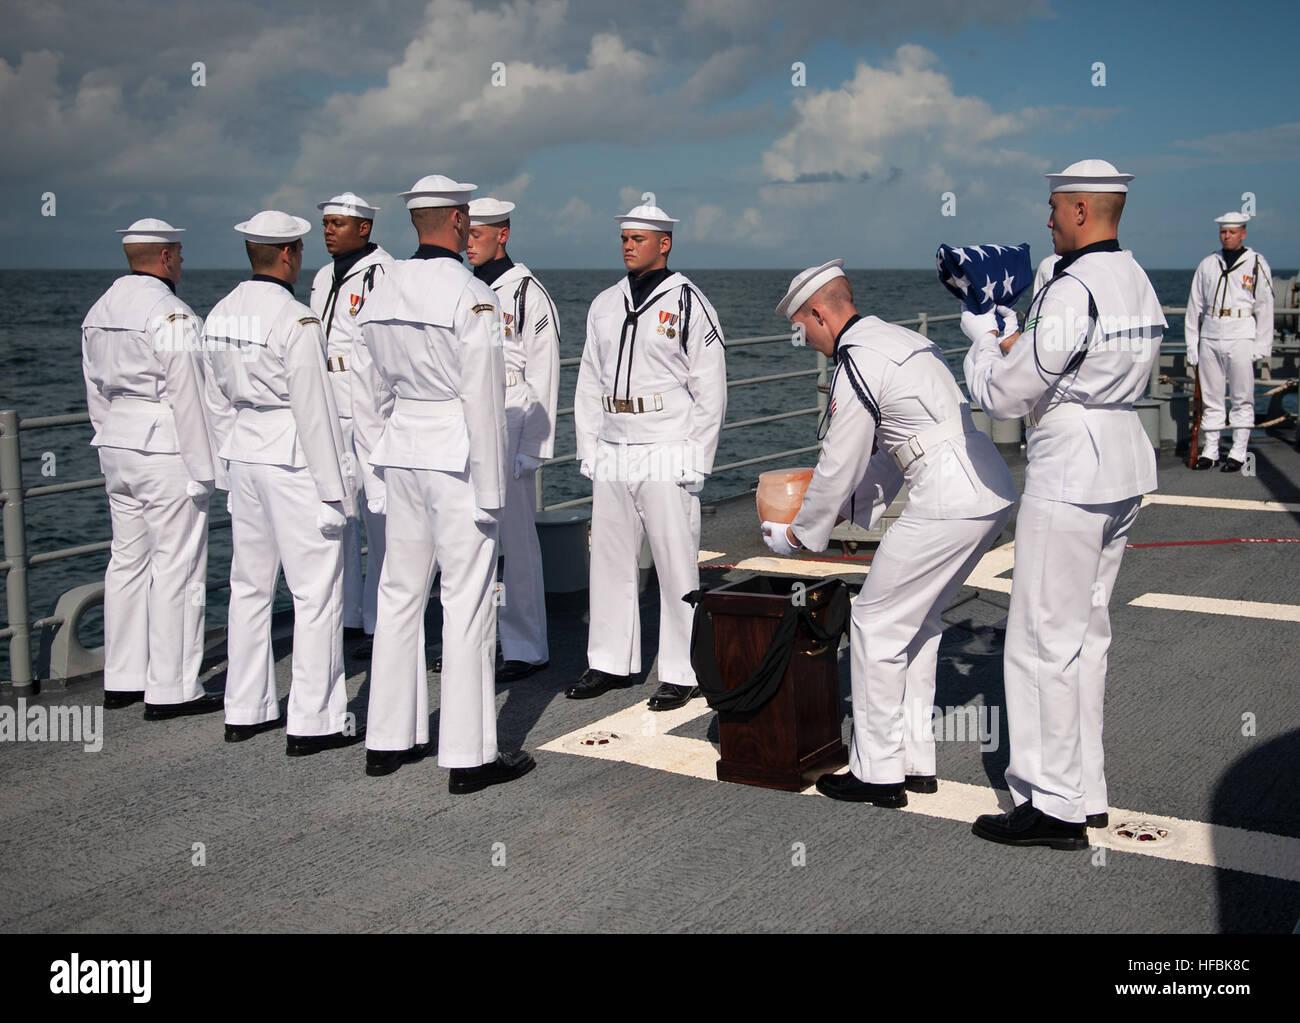 ATLANTIC OCEAN (Sept. 14, 2012)  Sailors carry the cremains of Apollo 11 astronaut Neil Armstrong during a burial - Stock Image